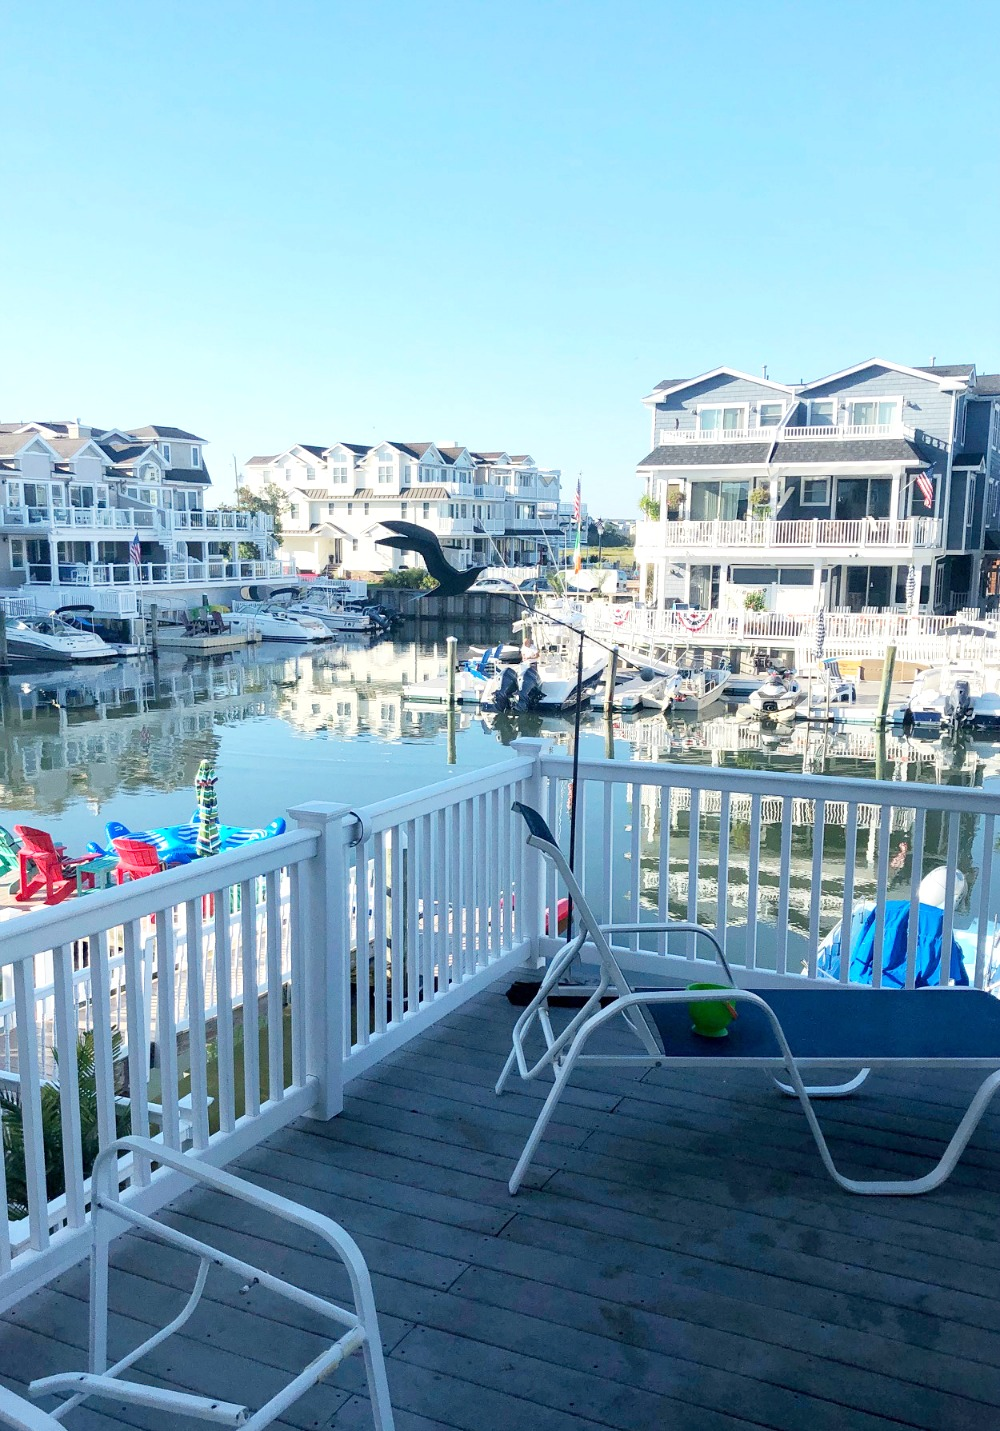 Jersey Shore Photo Diary I Sea Isle City #Travel #TravelBlogger